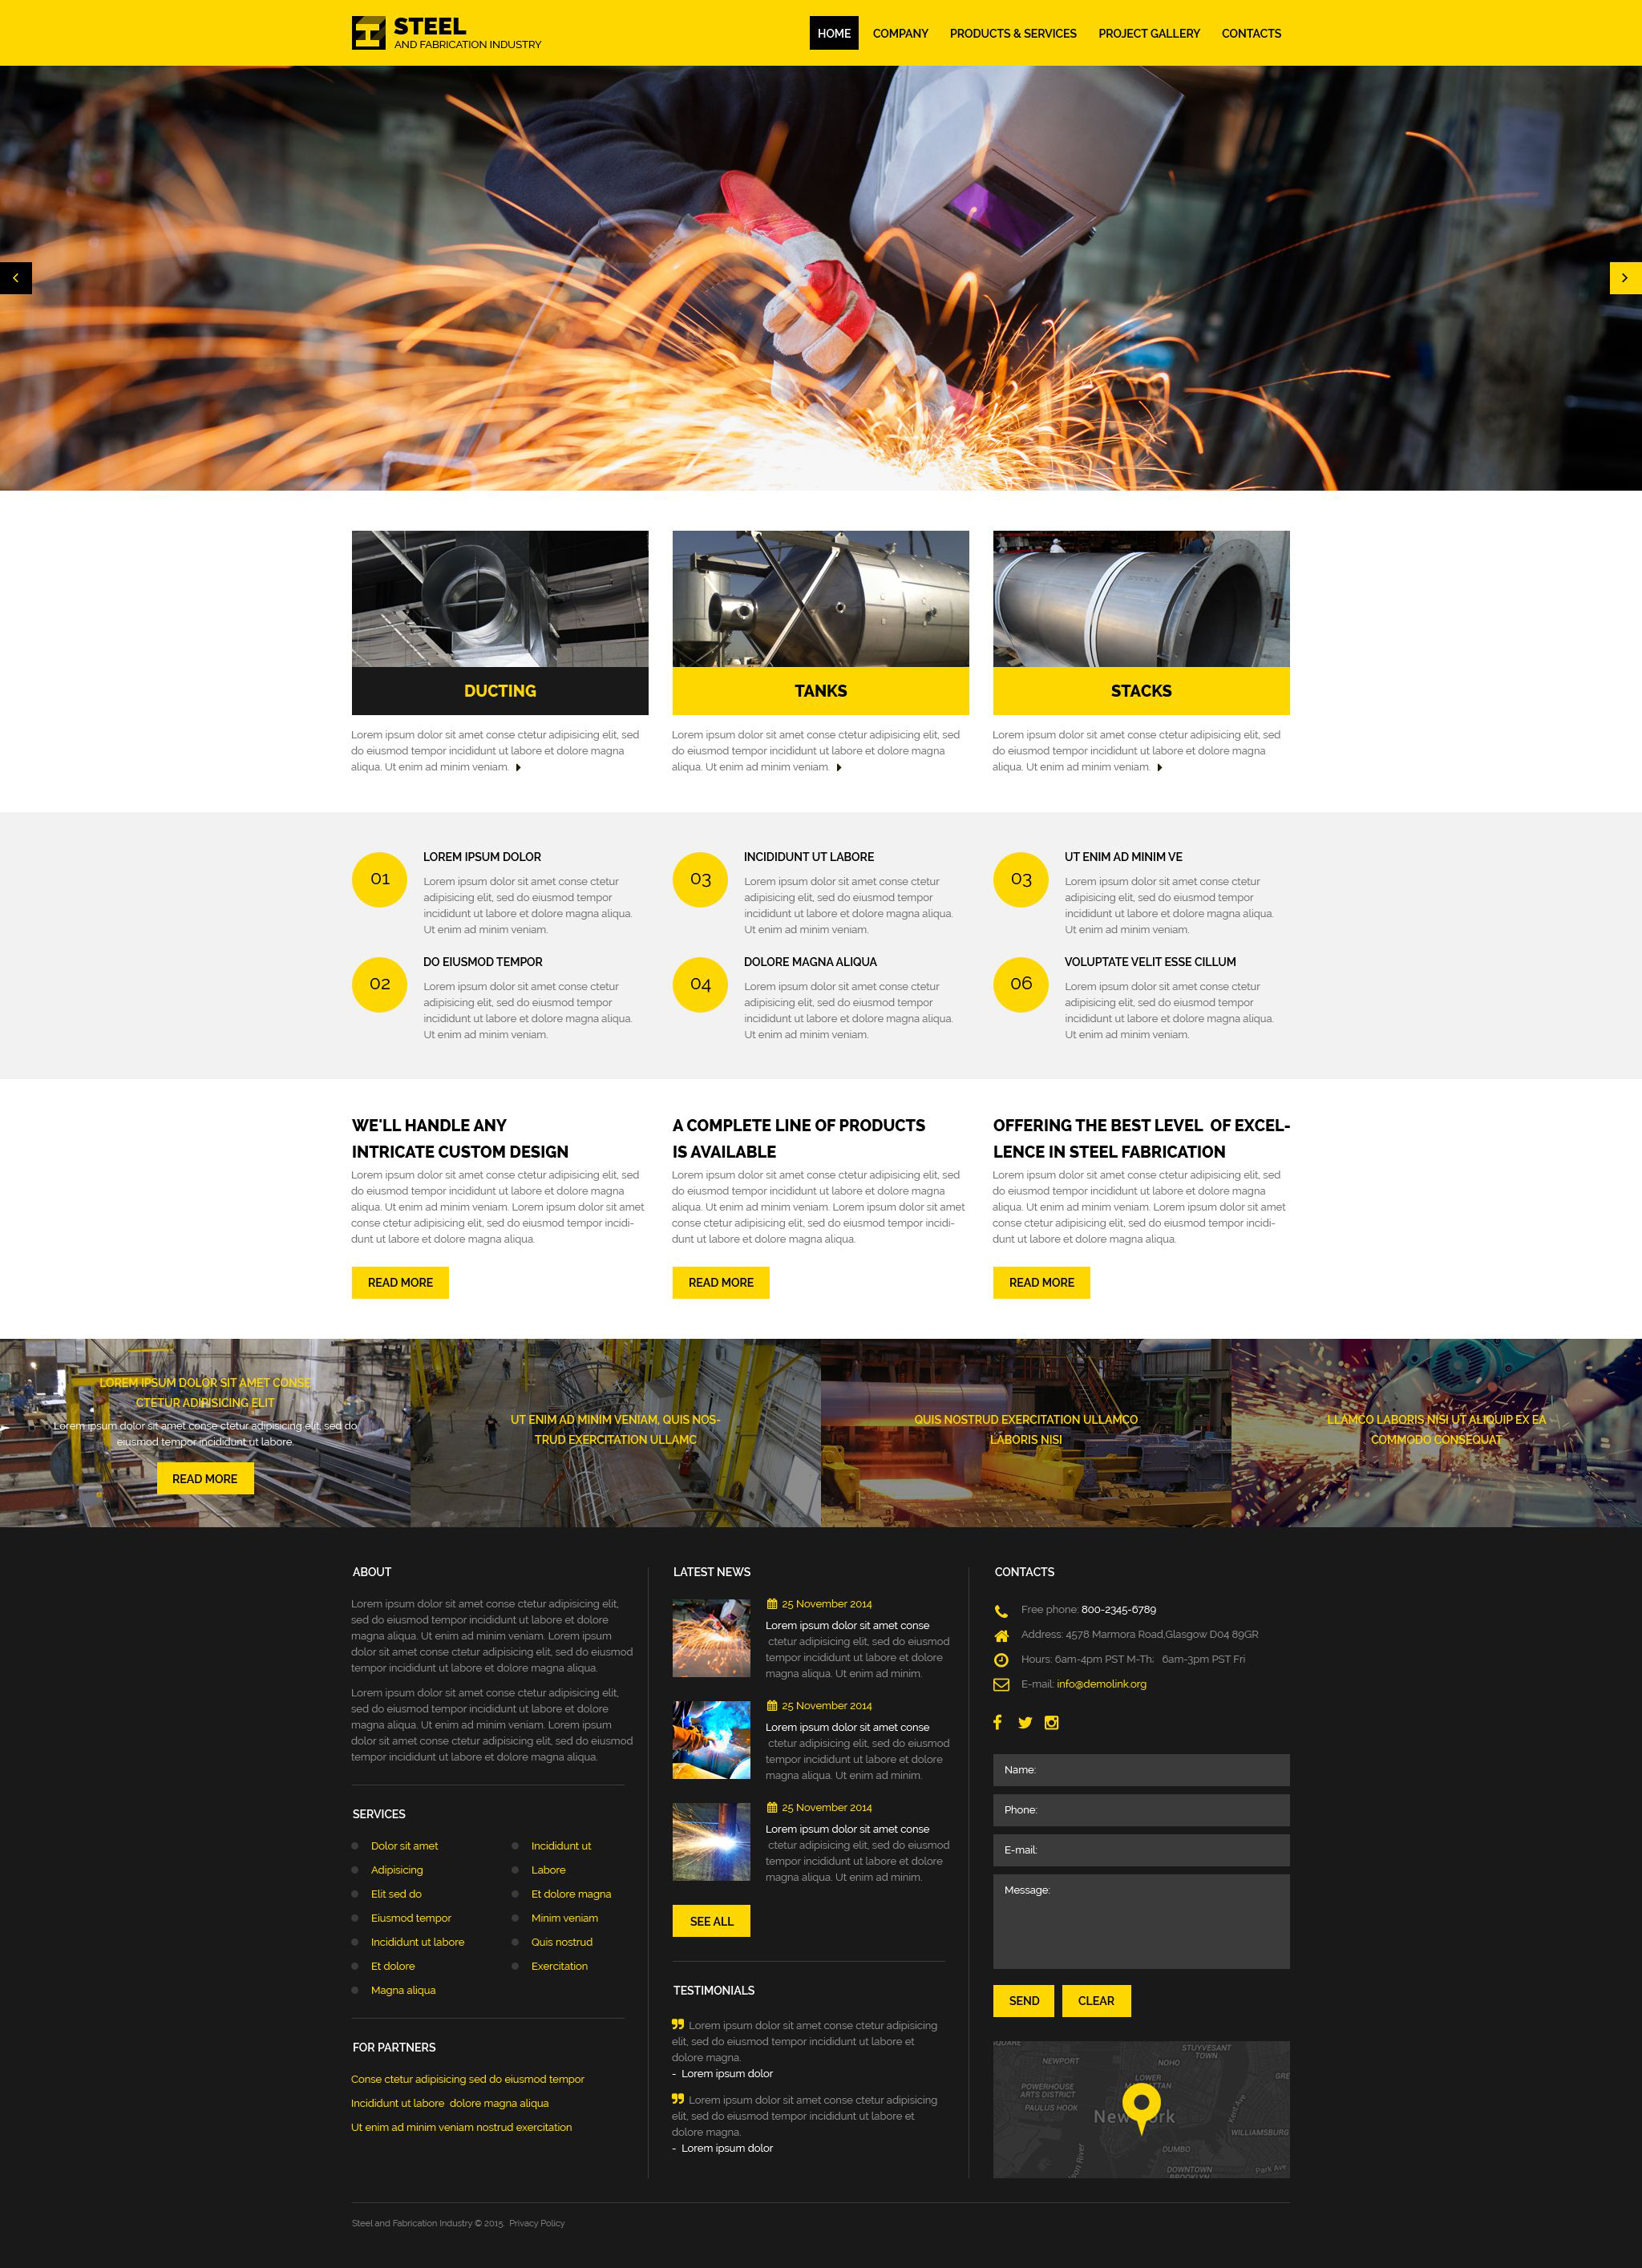 The Industrial Manufacturing Bootstrap Design 54021, one of the best website templates of its kind (industrial, most popular), also known as industrial manufacturing website template, industrial website template, metal website template, mining company website template, camp website template, open-cast website template, project website template, projects website template, services website template, human website template, resources website template, investors website template, site website template, walking website template, excavator website template, truck and related with industrial manufacturing, industrial, metal, mining company, camp, open-cast, project, projects, services, human, resources, investors, site, walking, excavator, truck, etc.